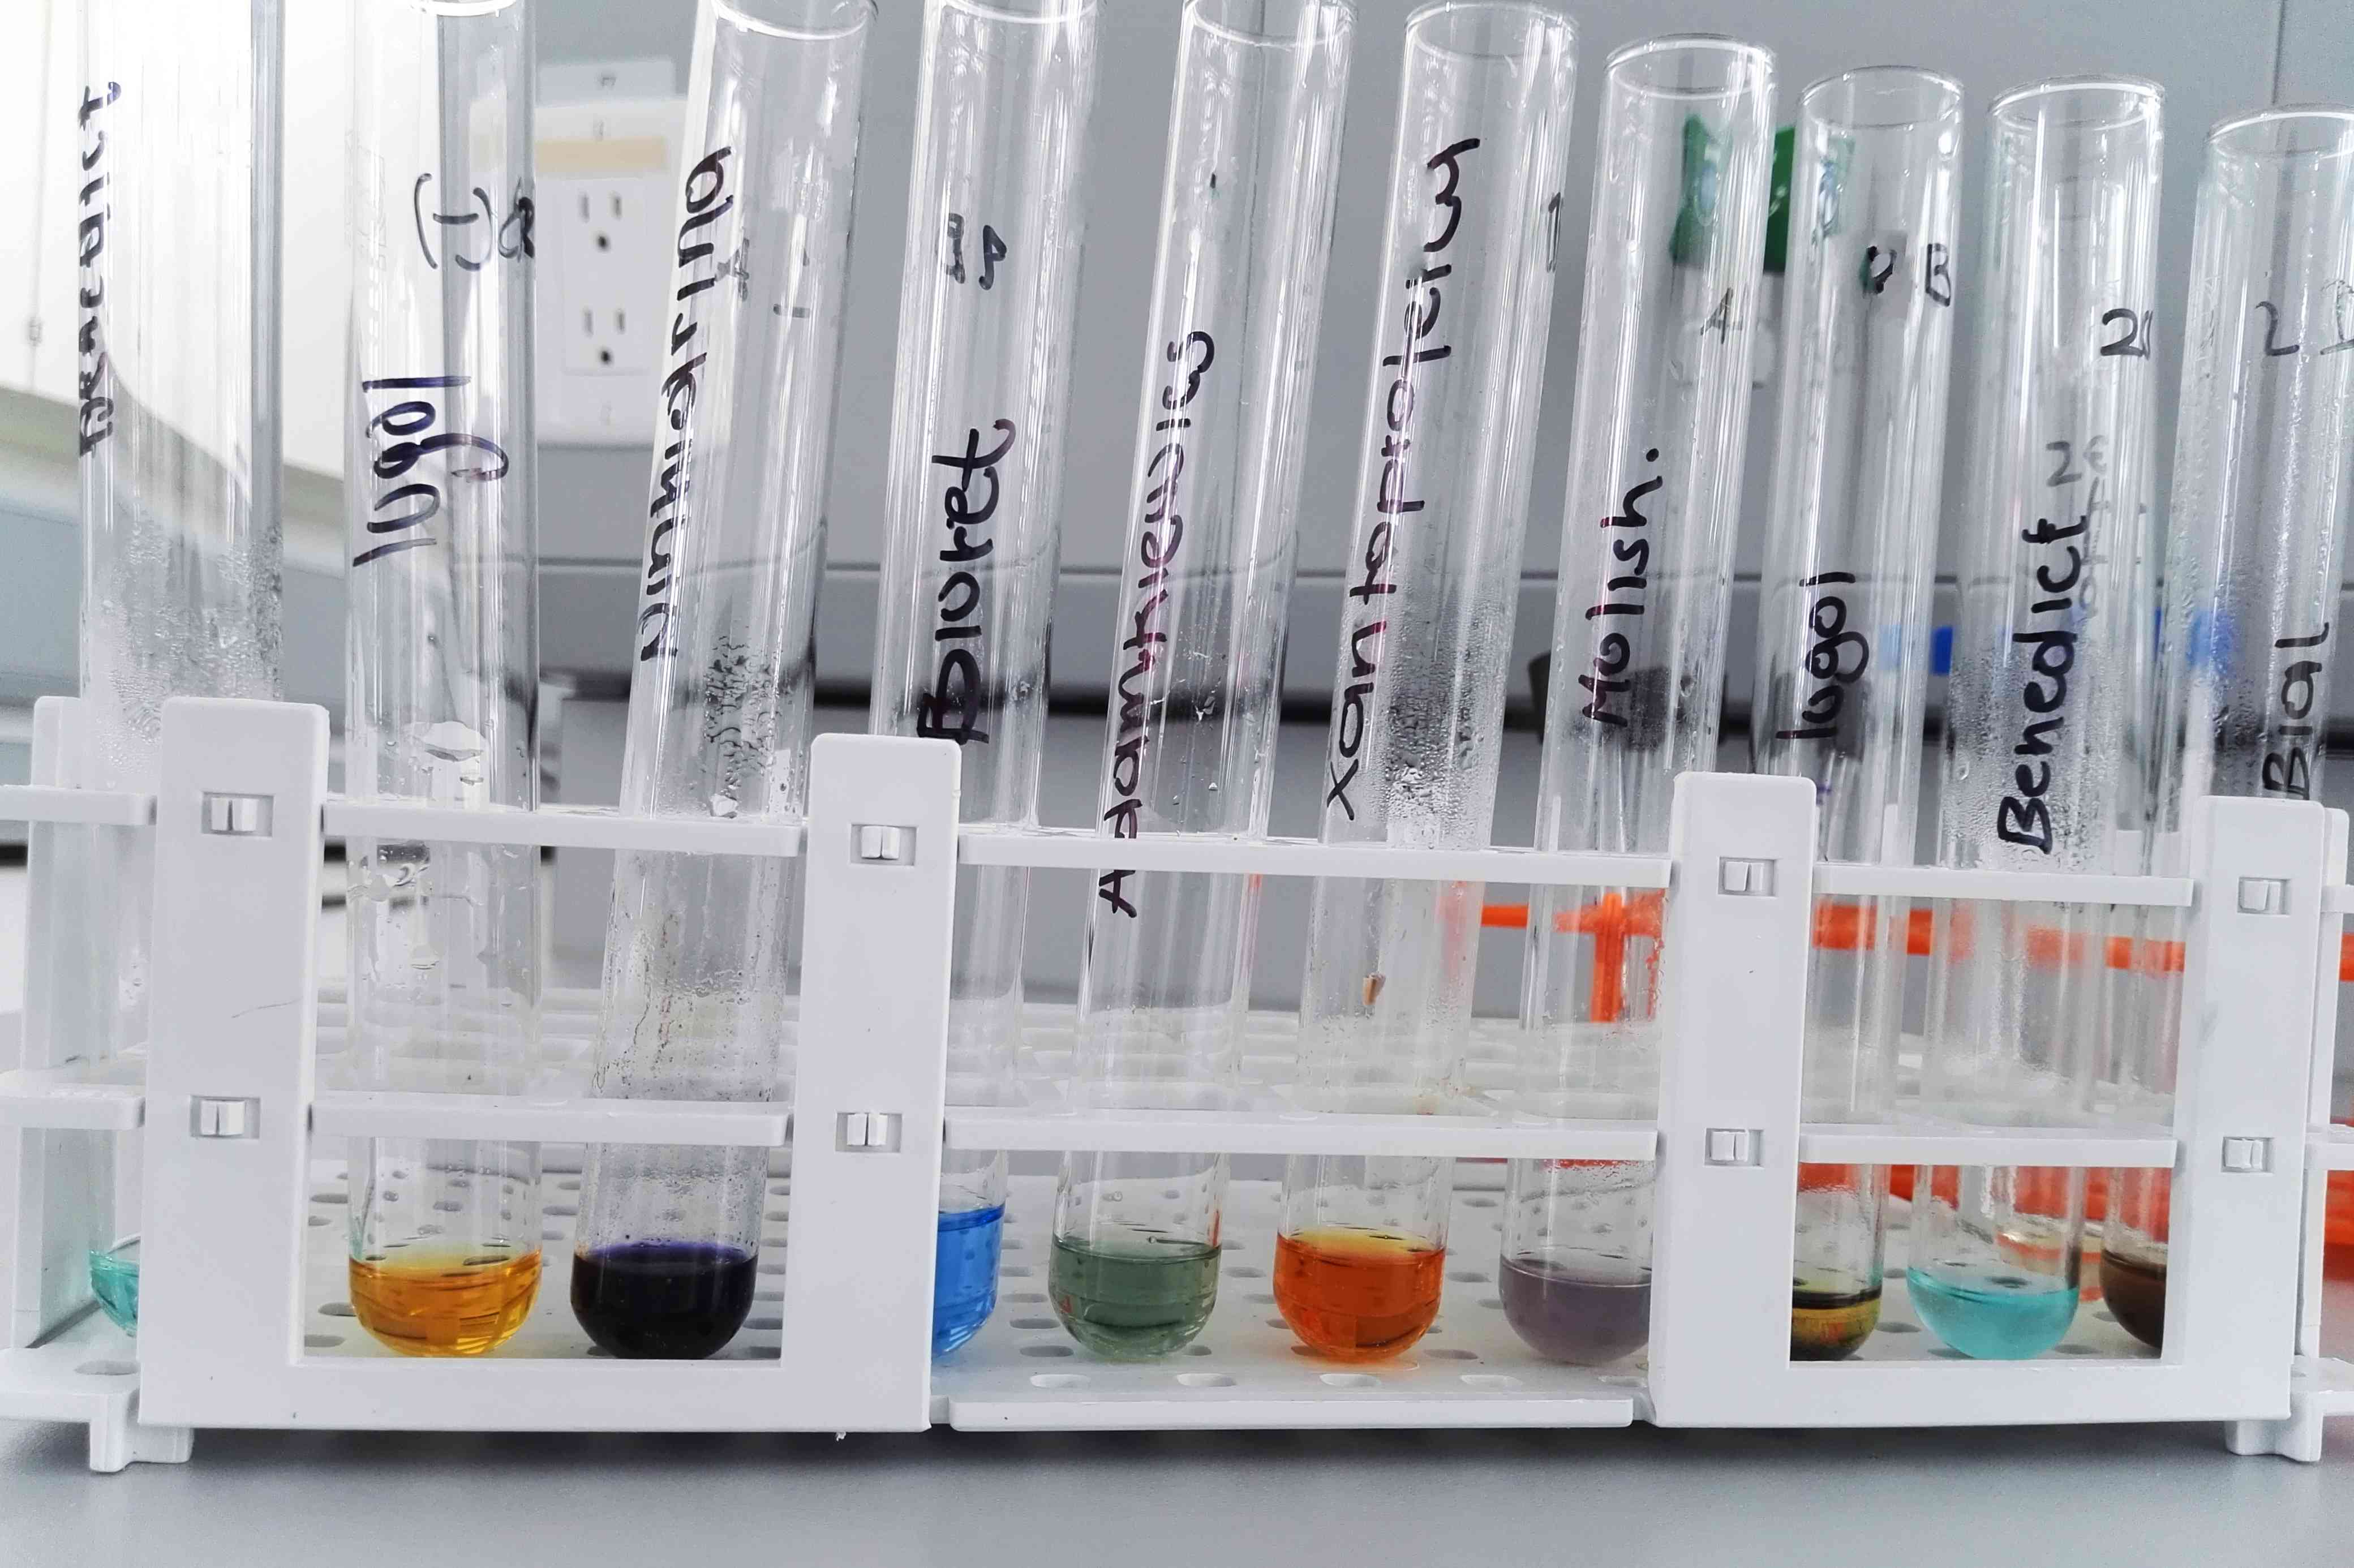 A row of test tubes with solution in them.